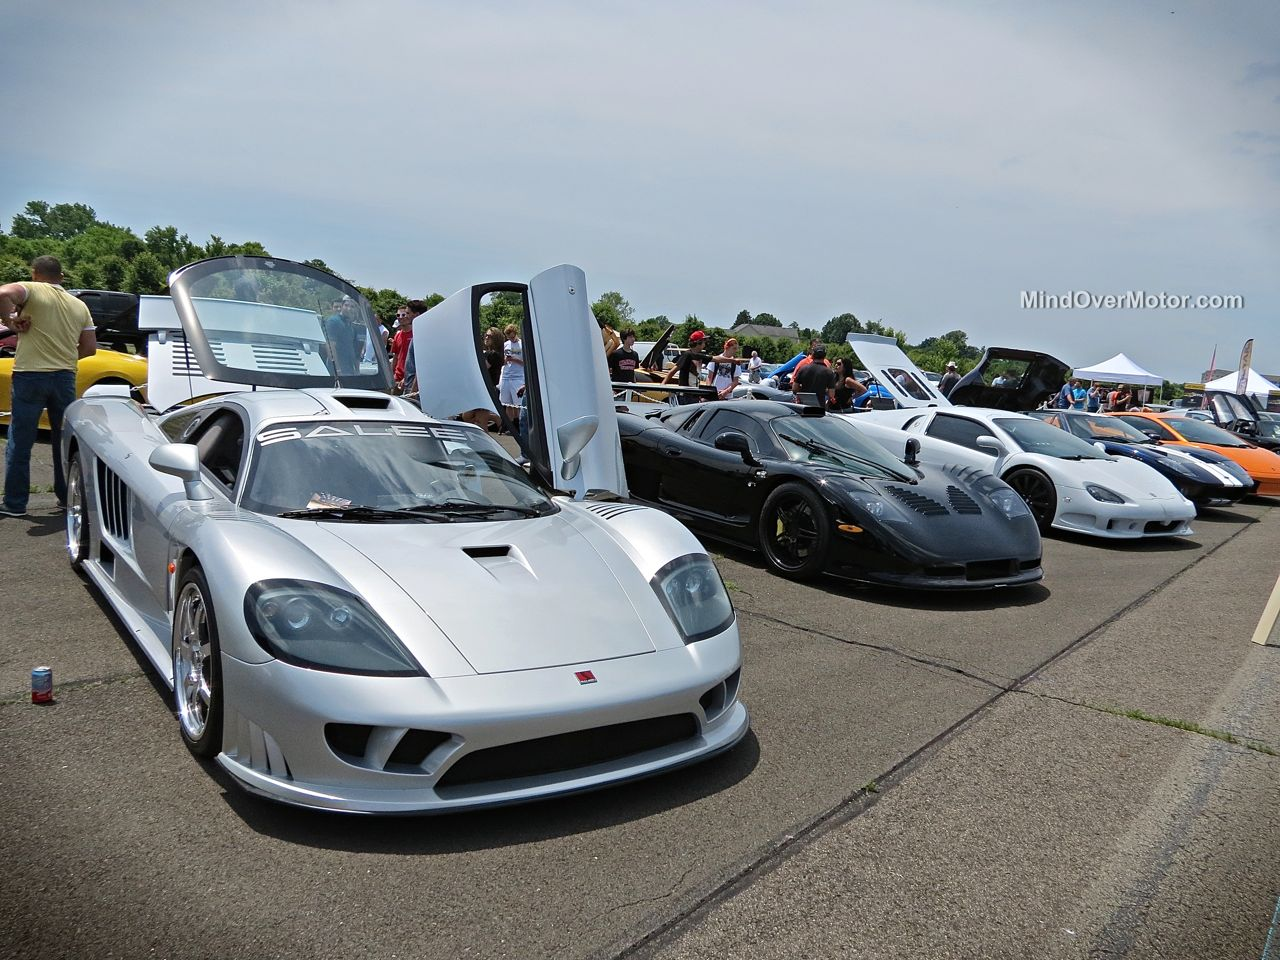 Saleen S7, Mosler Raptor GTR and SSC Ultimate Aero at CF Charities Supercar Show